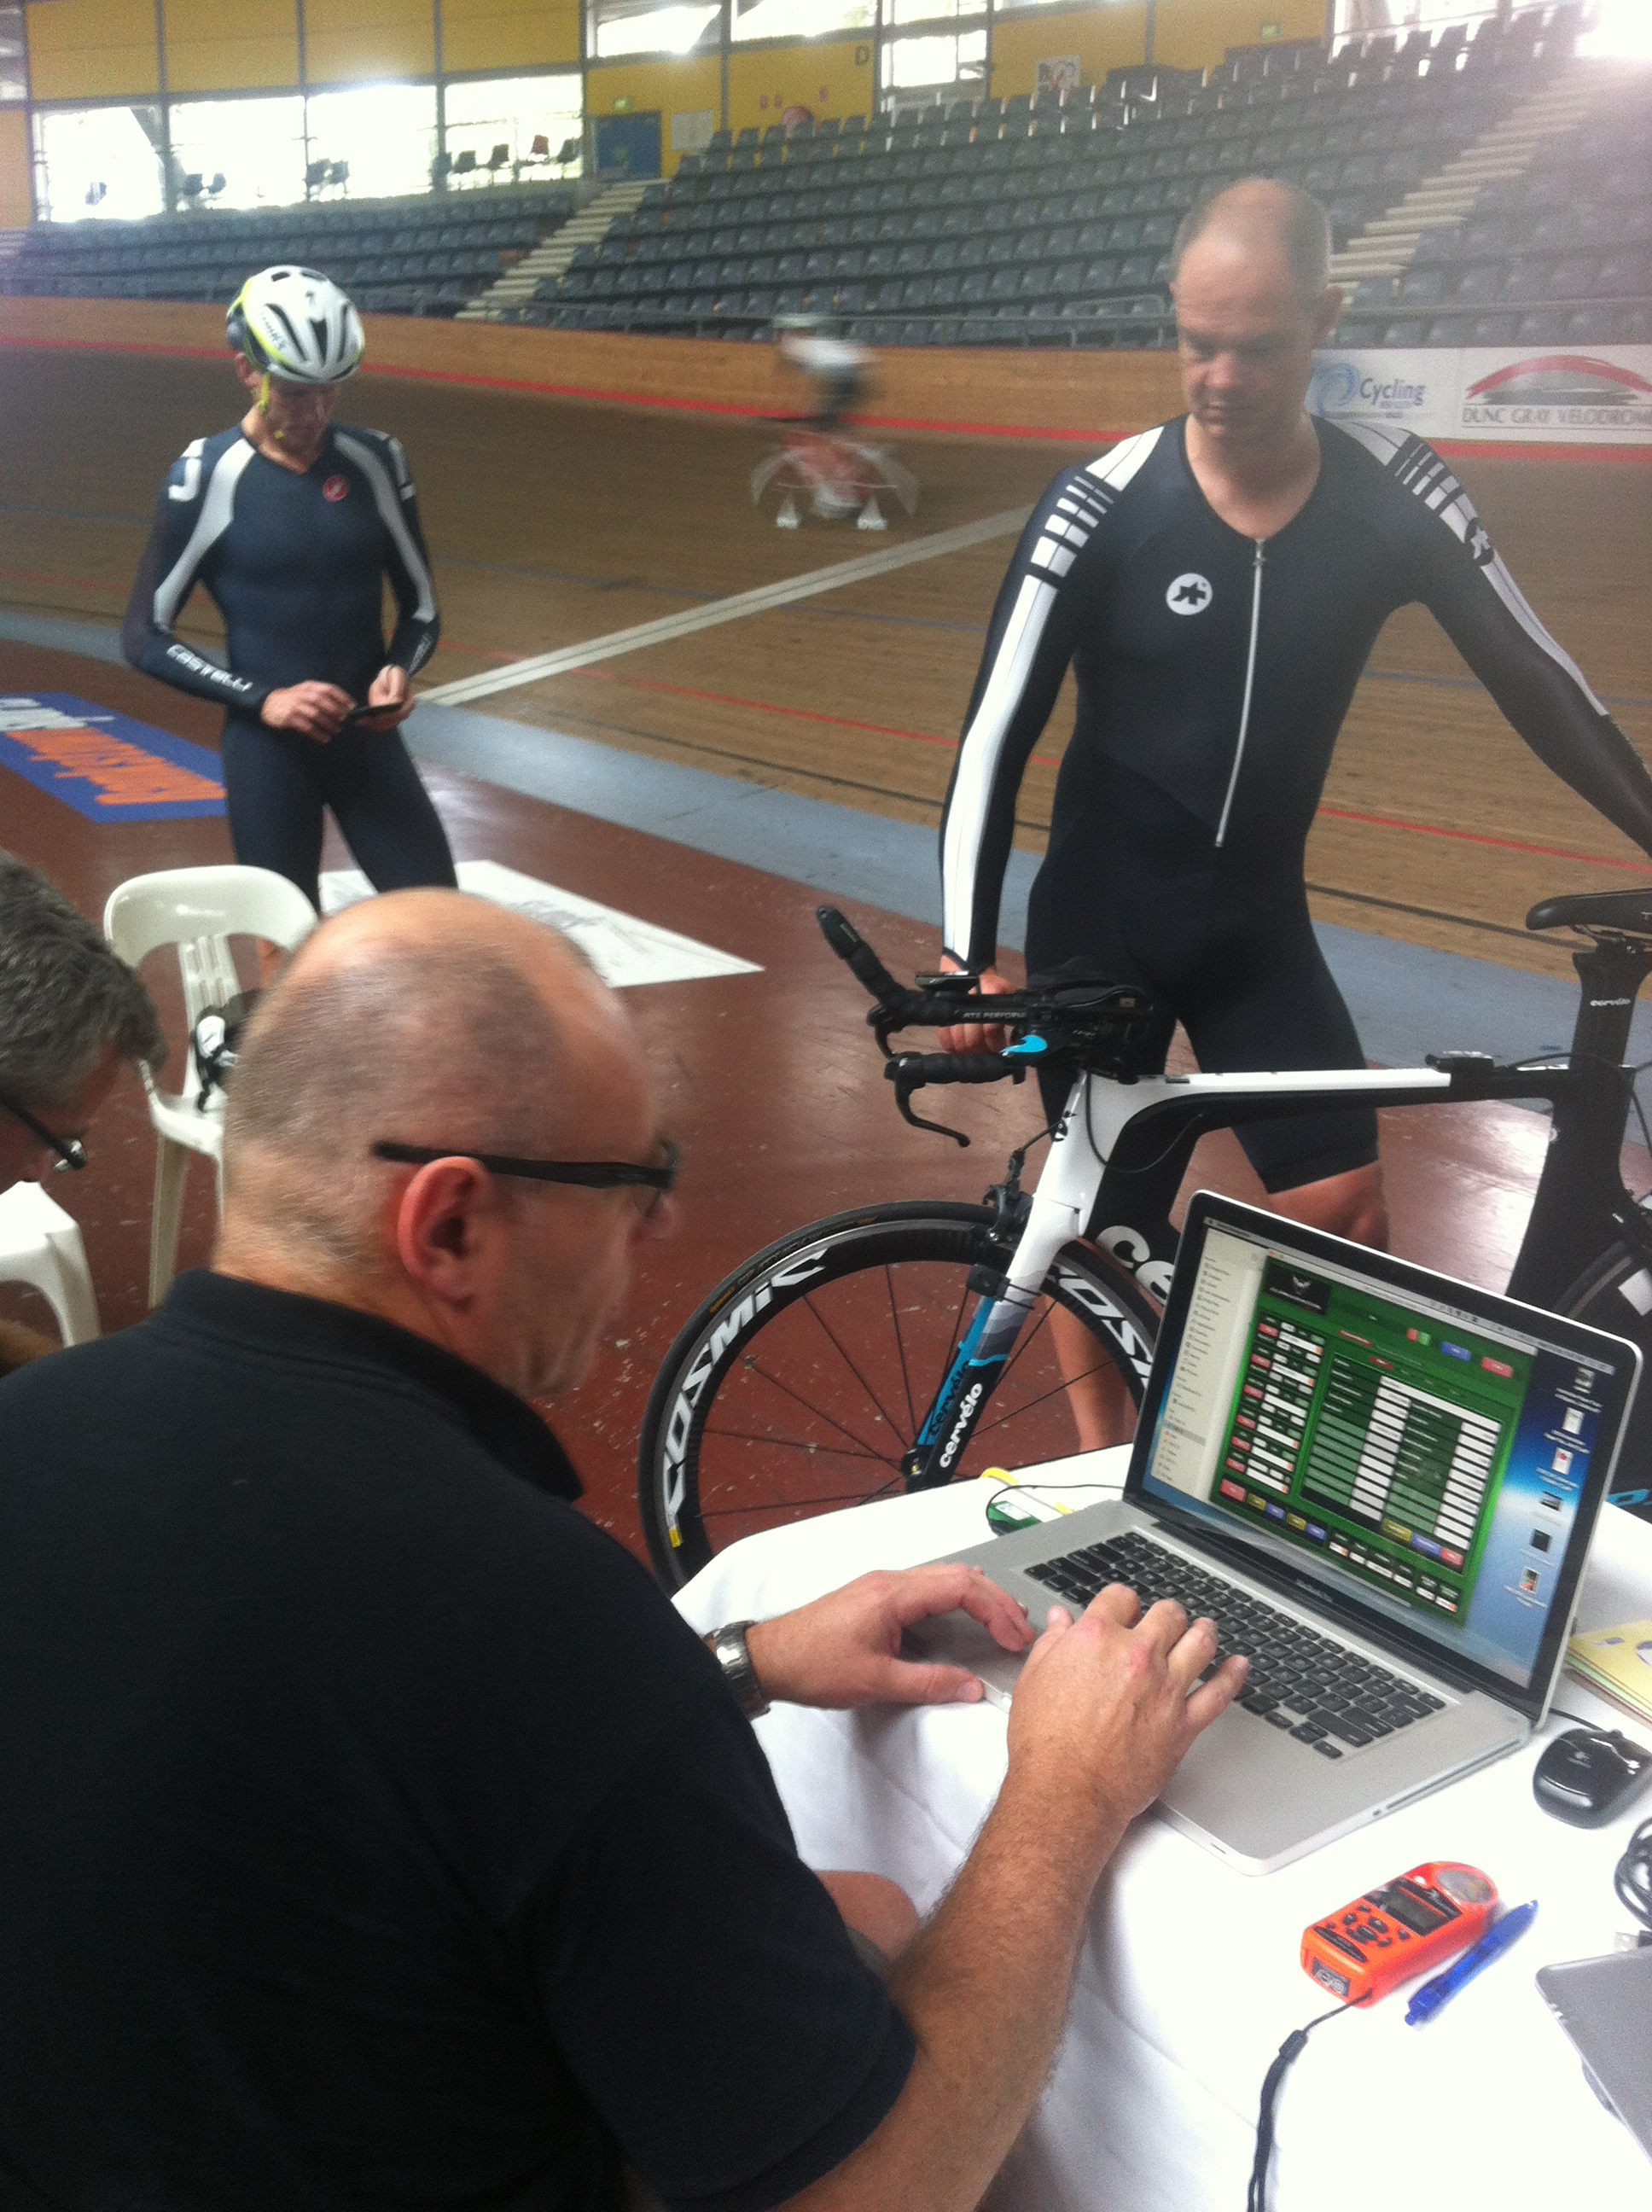 Alex Simmons at DGV doing aero testing and Mark Renshaw (white blur) circulating in the background.